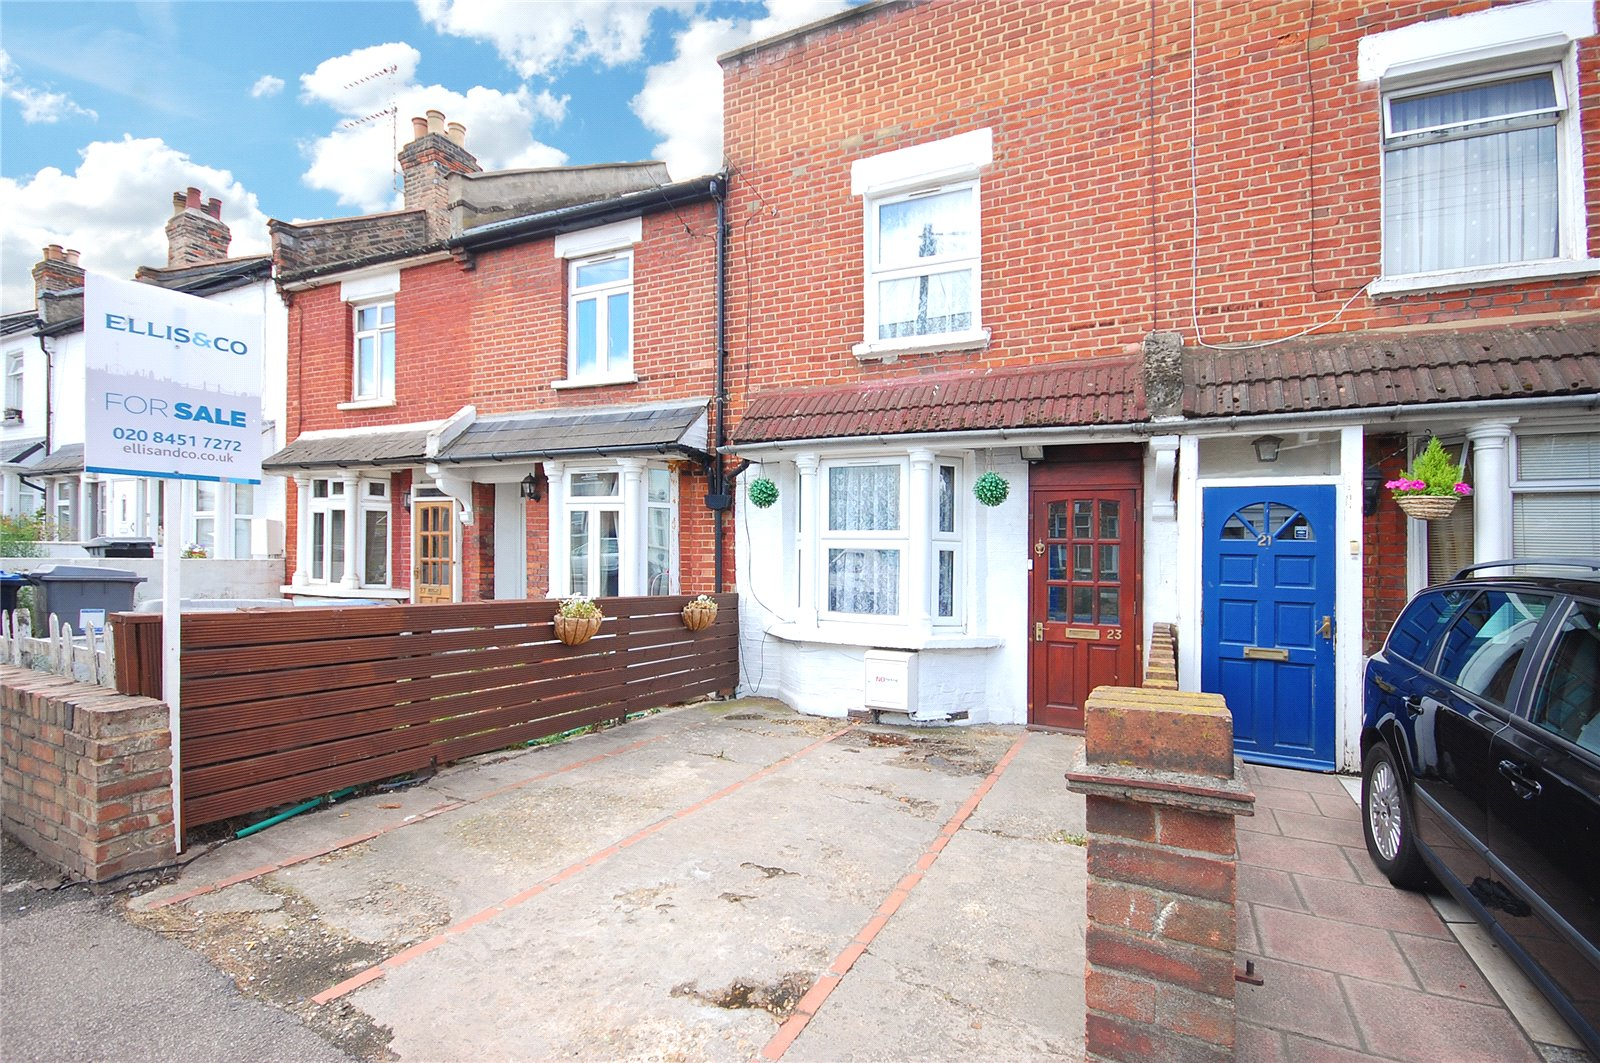 2 Bedrooms Terraced House for sale in Rucklidge Avenue London NW10